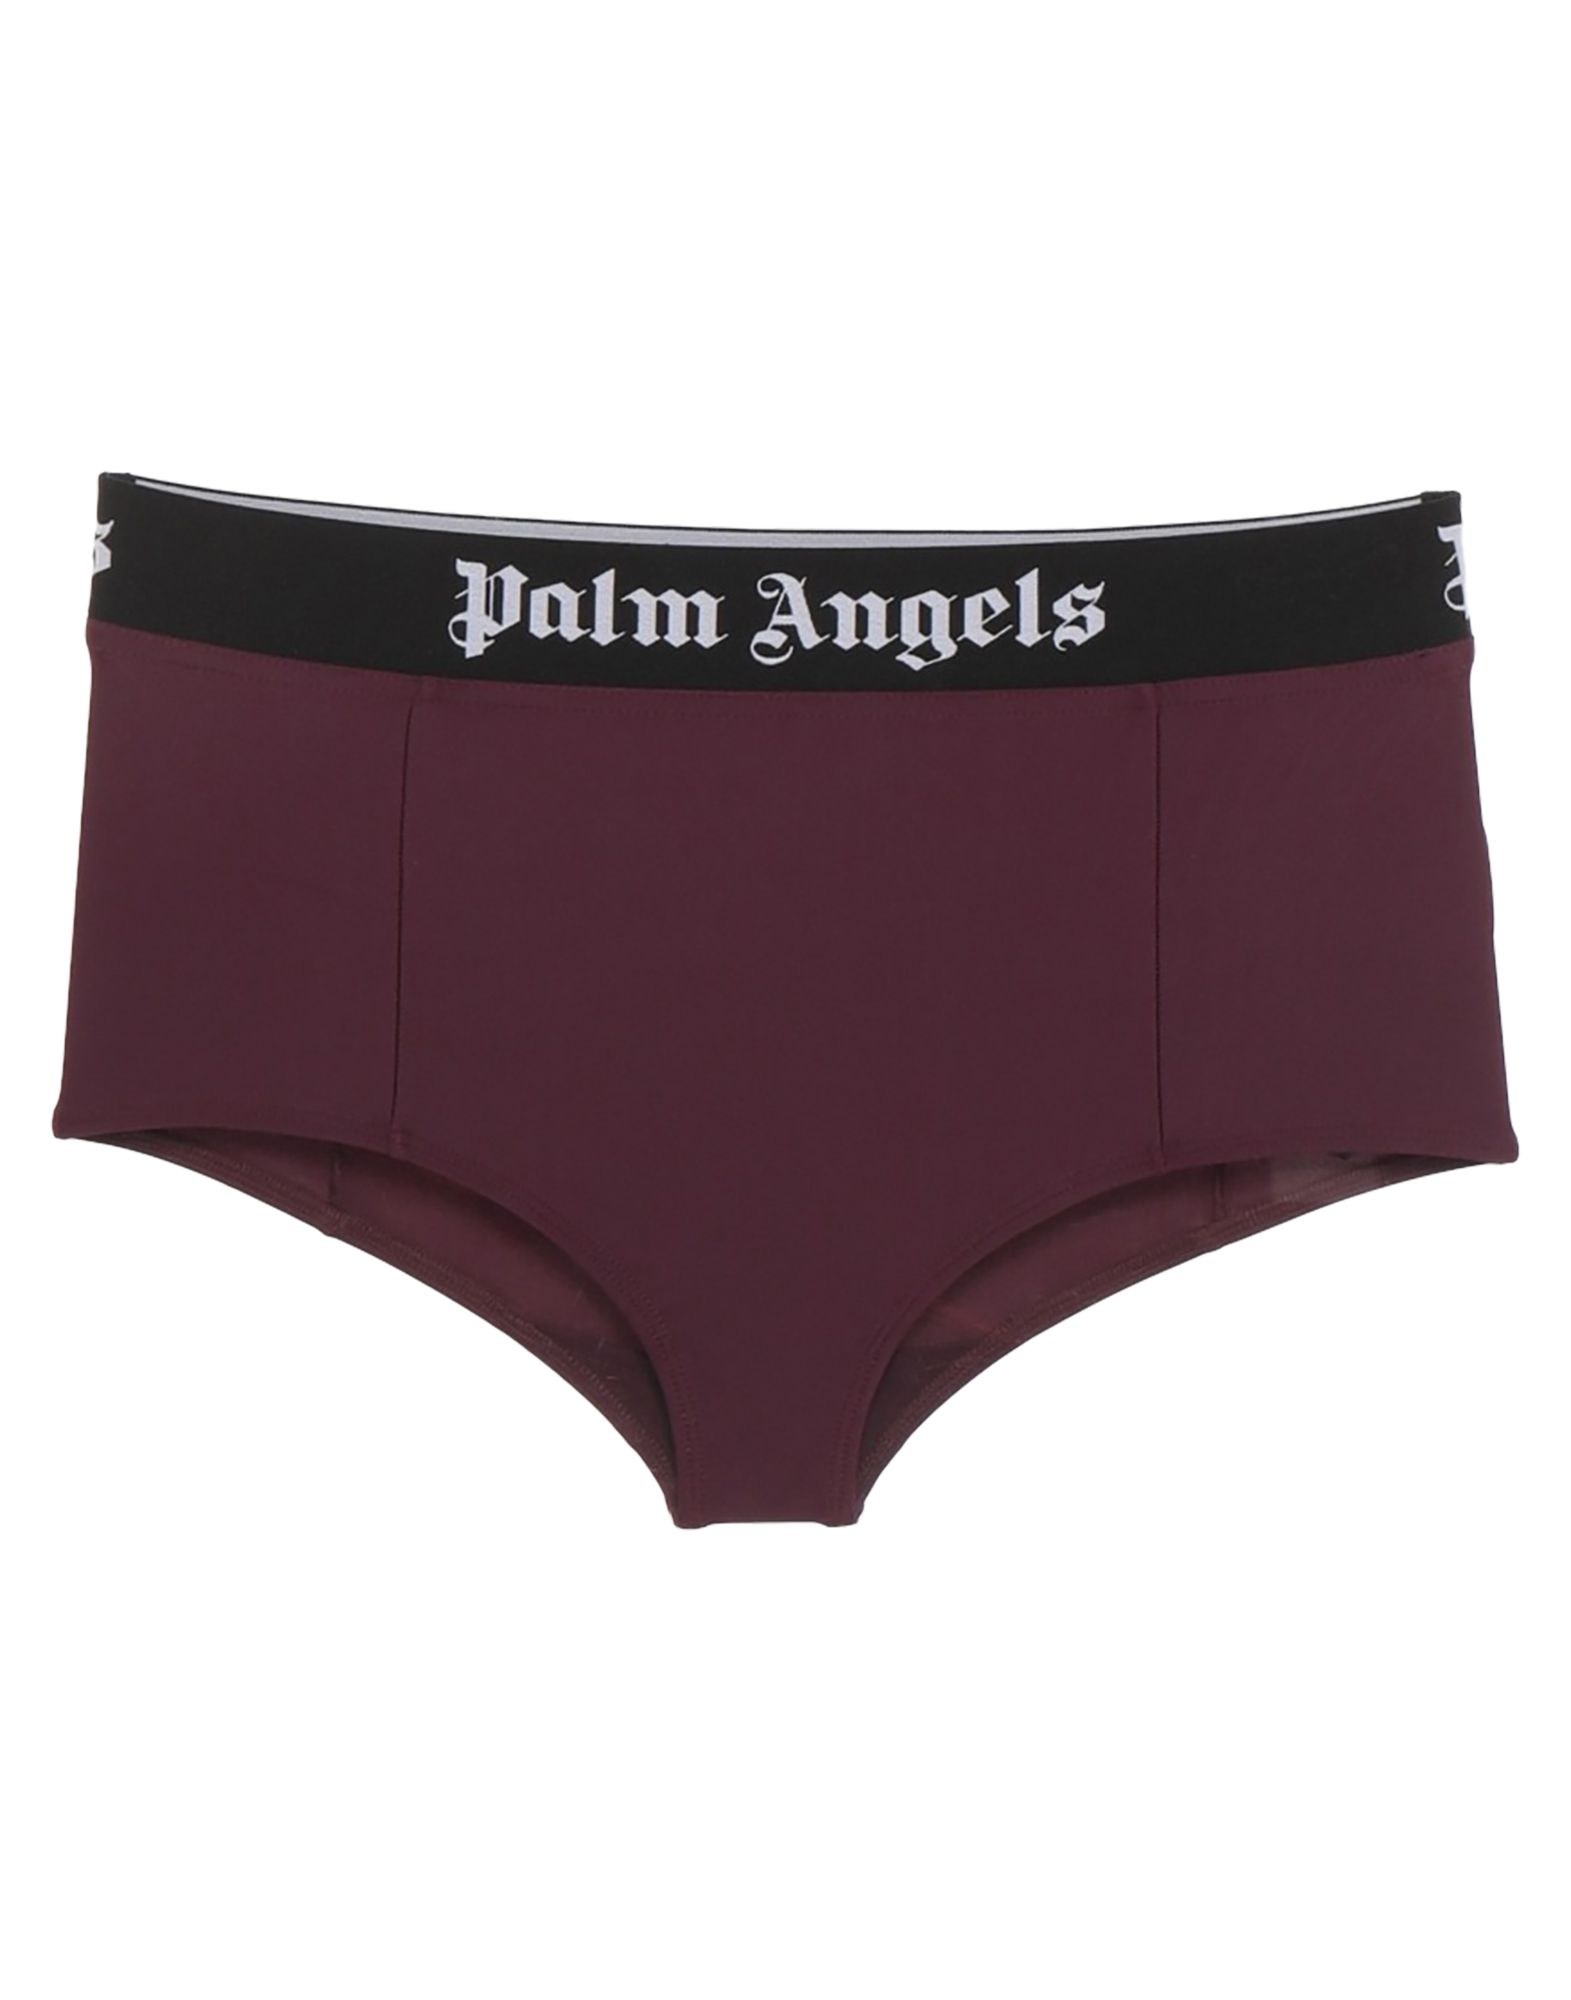 PALM ANGELS Boyshorts. synthetic jersey, logo, solid color, stretch. 80% Polyamide, 20% Elastane